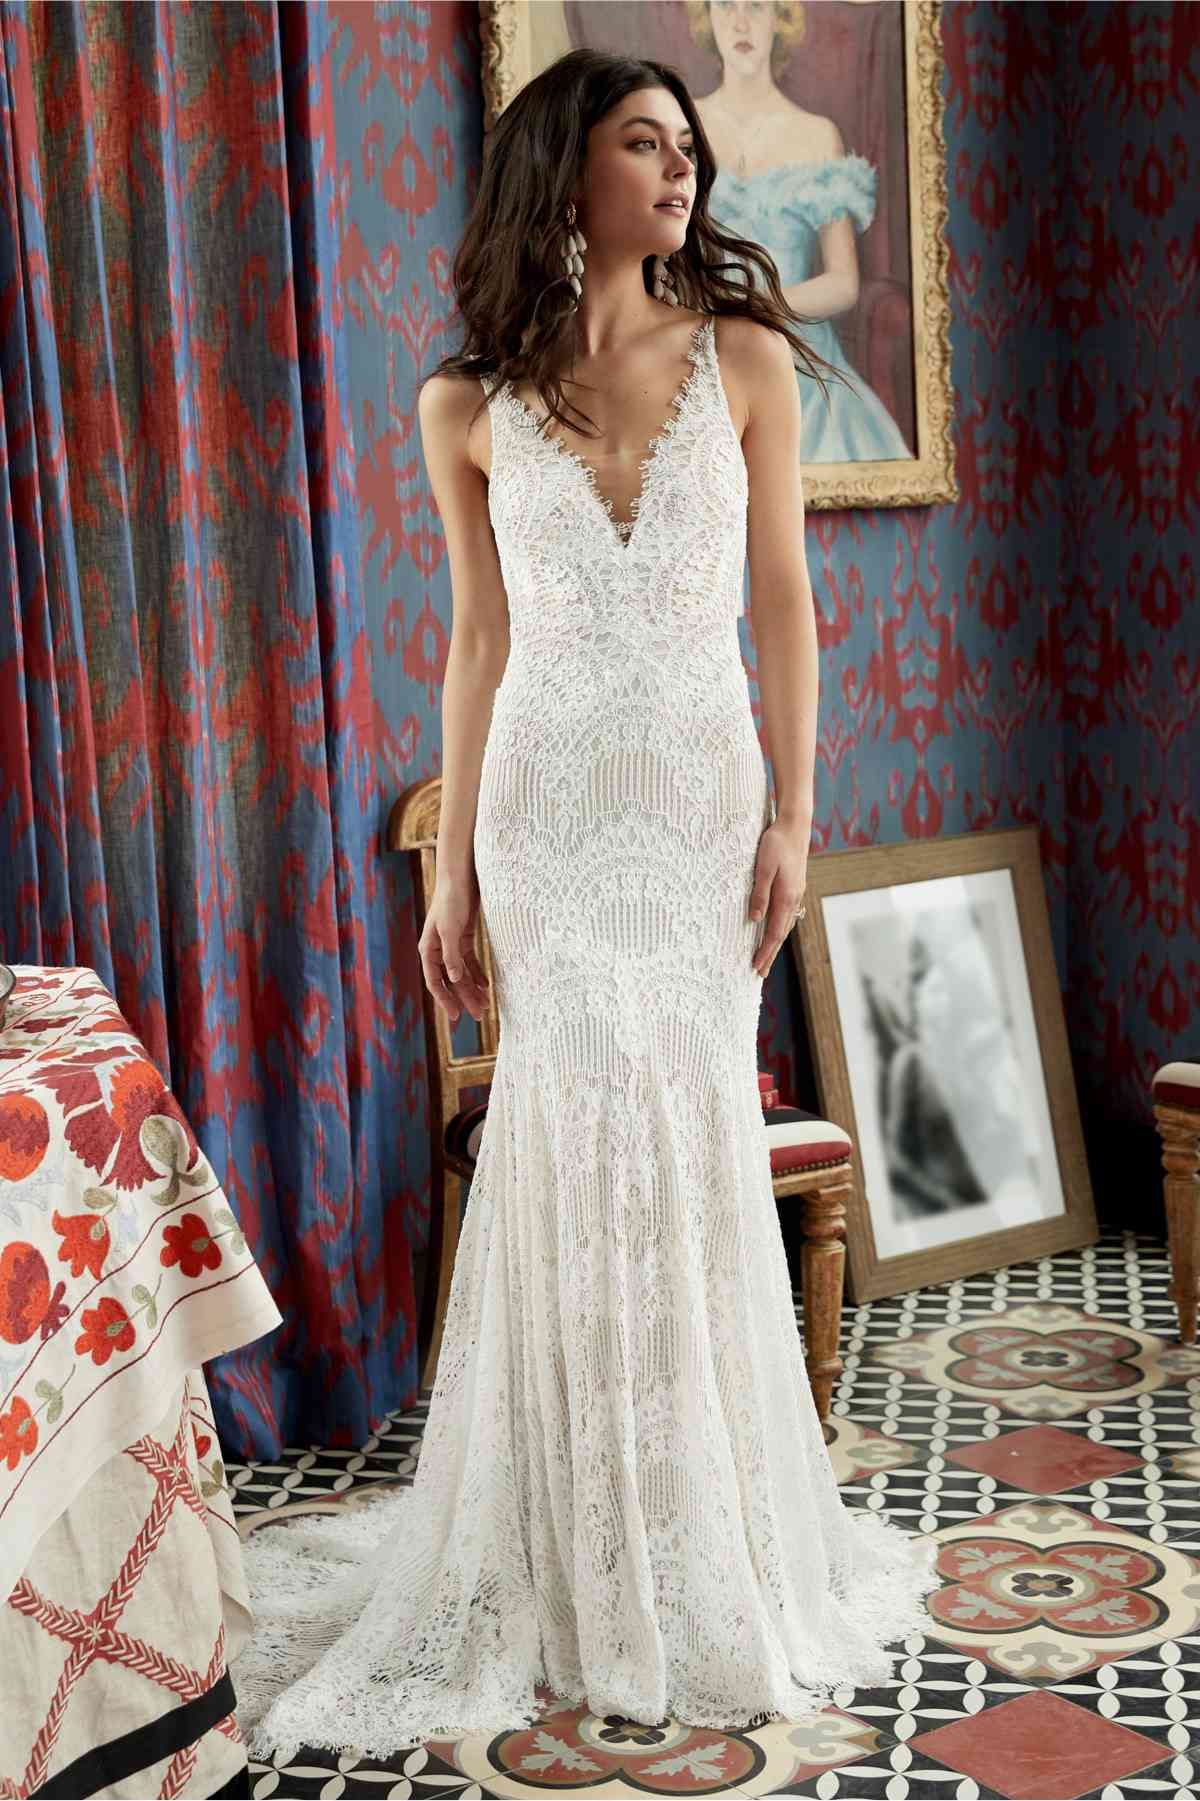 Model in a V-neck geometric lace fit-and-flare gown